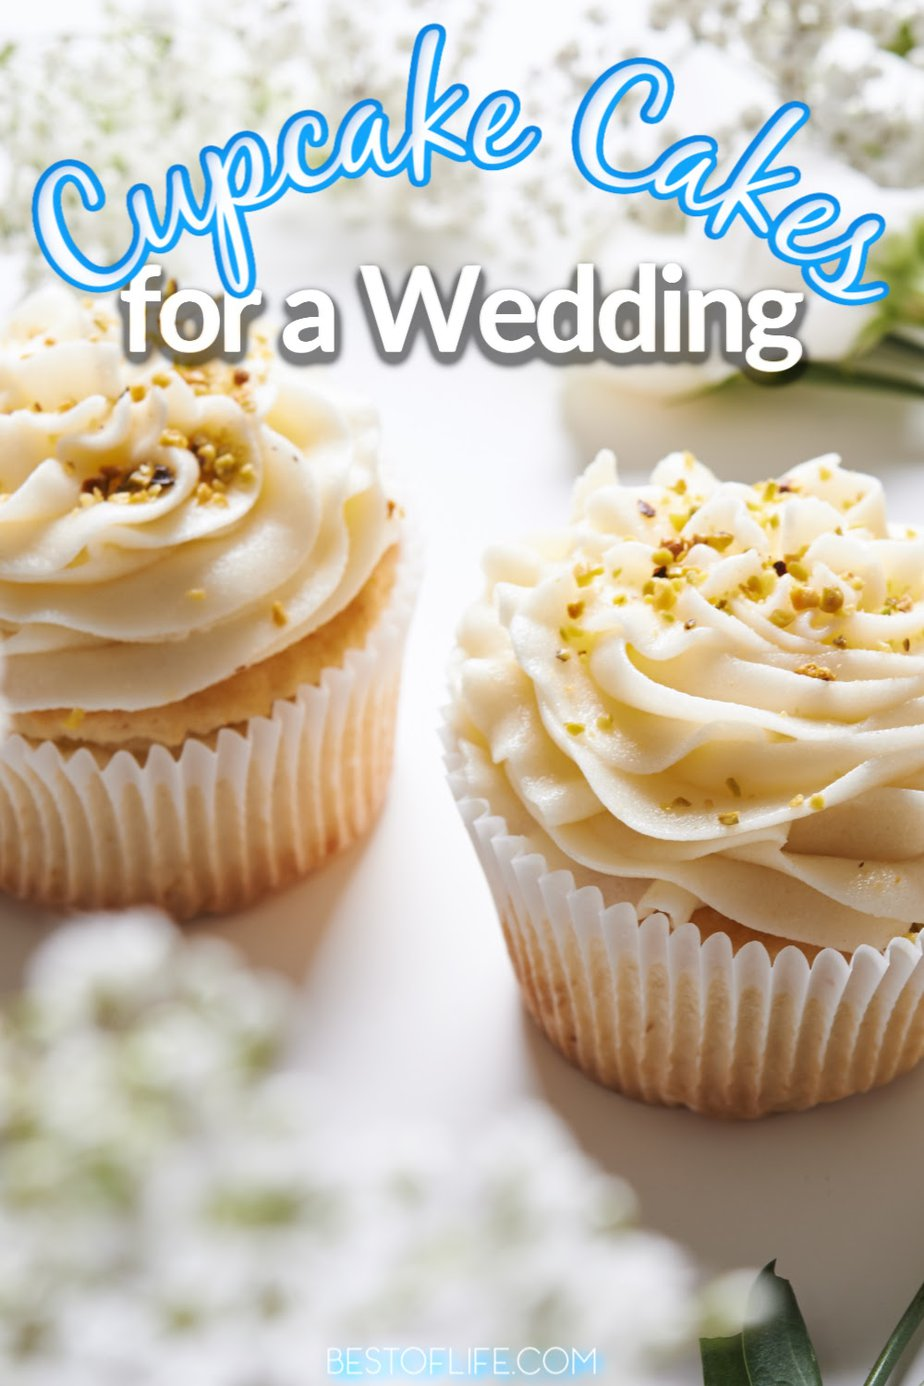 Cupcake cakes for a wedding can be as customized as any of the best wedding cakes can be and they are even easier to share with the entire party. Wedding Cake Ideas | Wedding Cake Designs | Cupcake Wedding Cake Rustic | Wedding Cake Inspiration | Simple Wedding Cake | Cupcake Wedding Cake Table #wedding #cupcakecakes #cupcakes